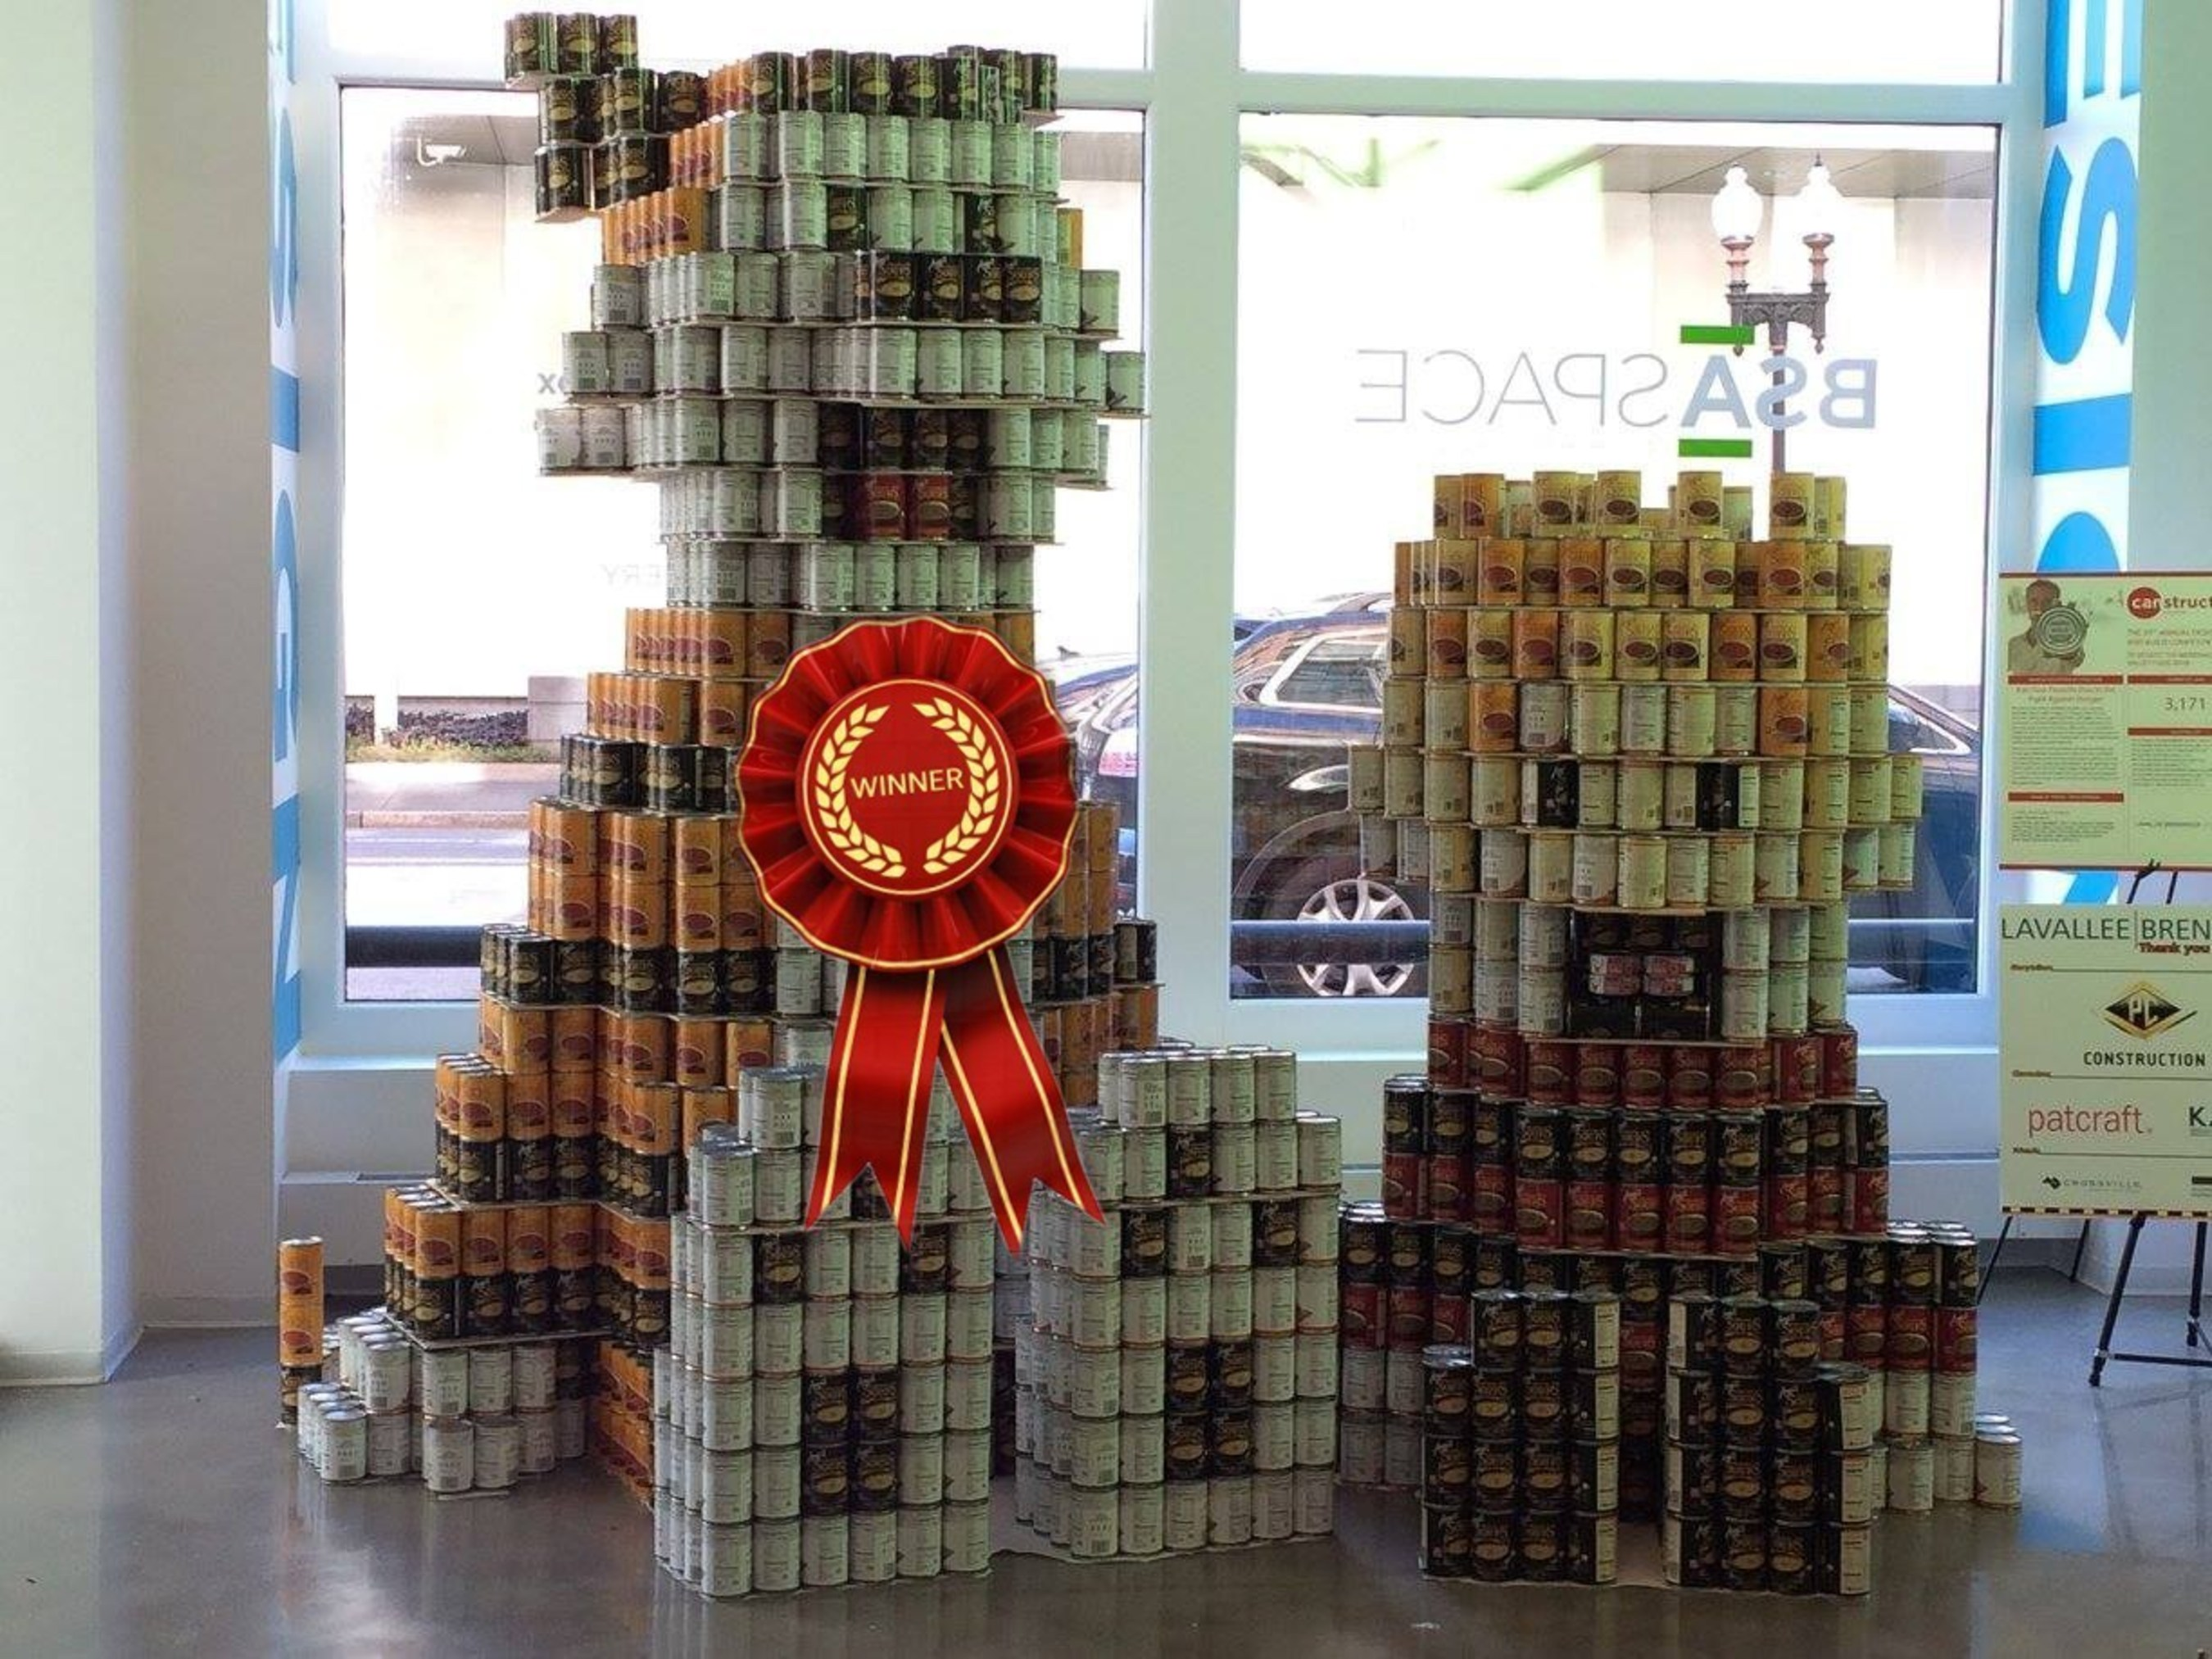 Lavallee Brensinger awarded People's Choice at 2015 Boston CANstruction